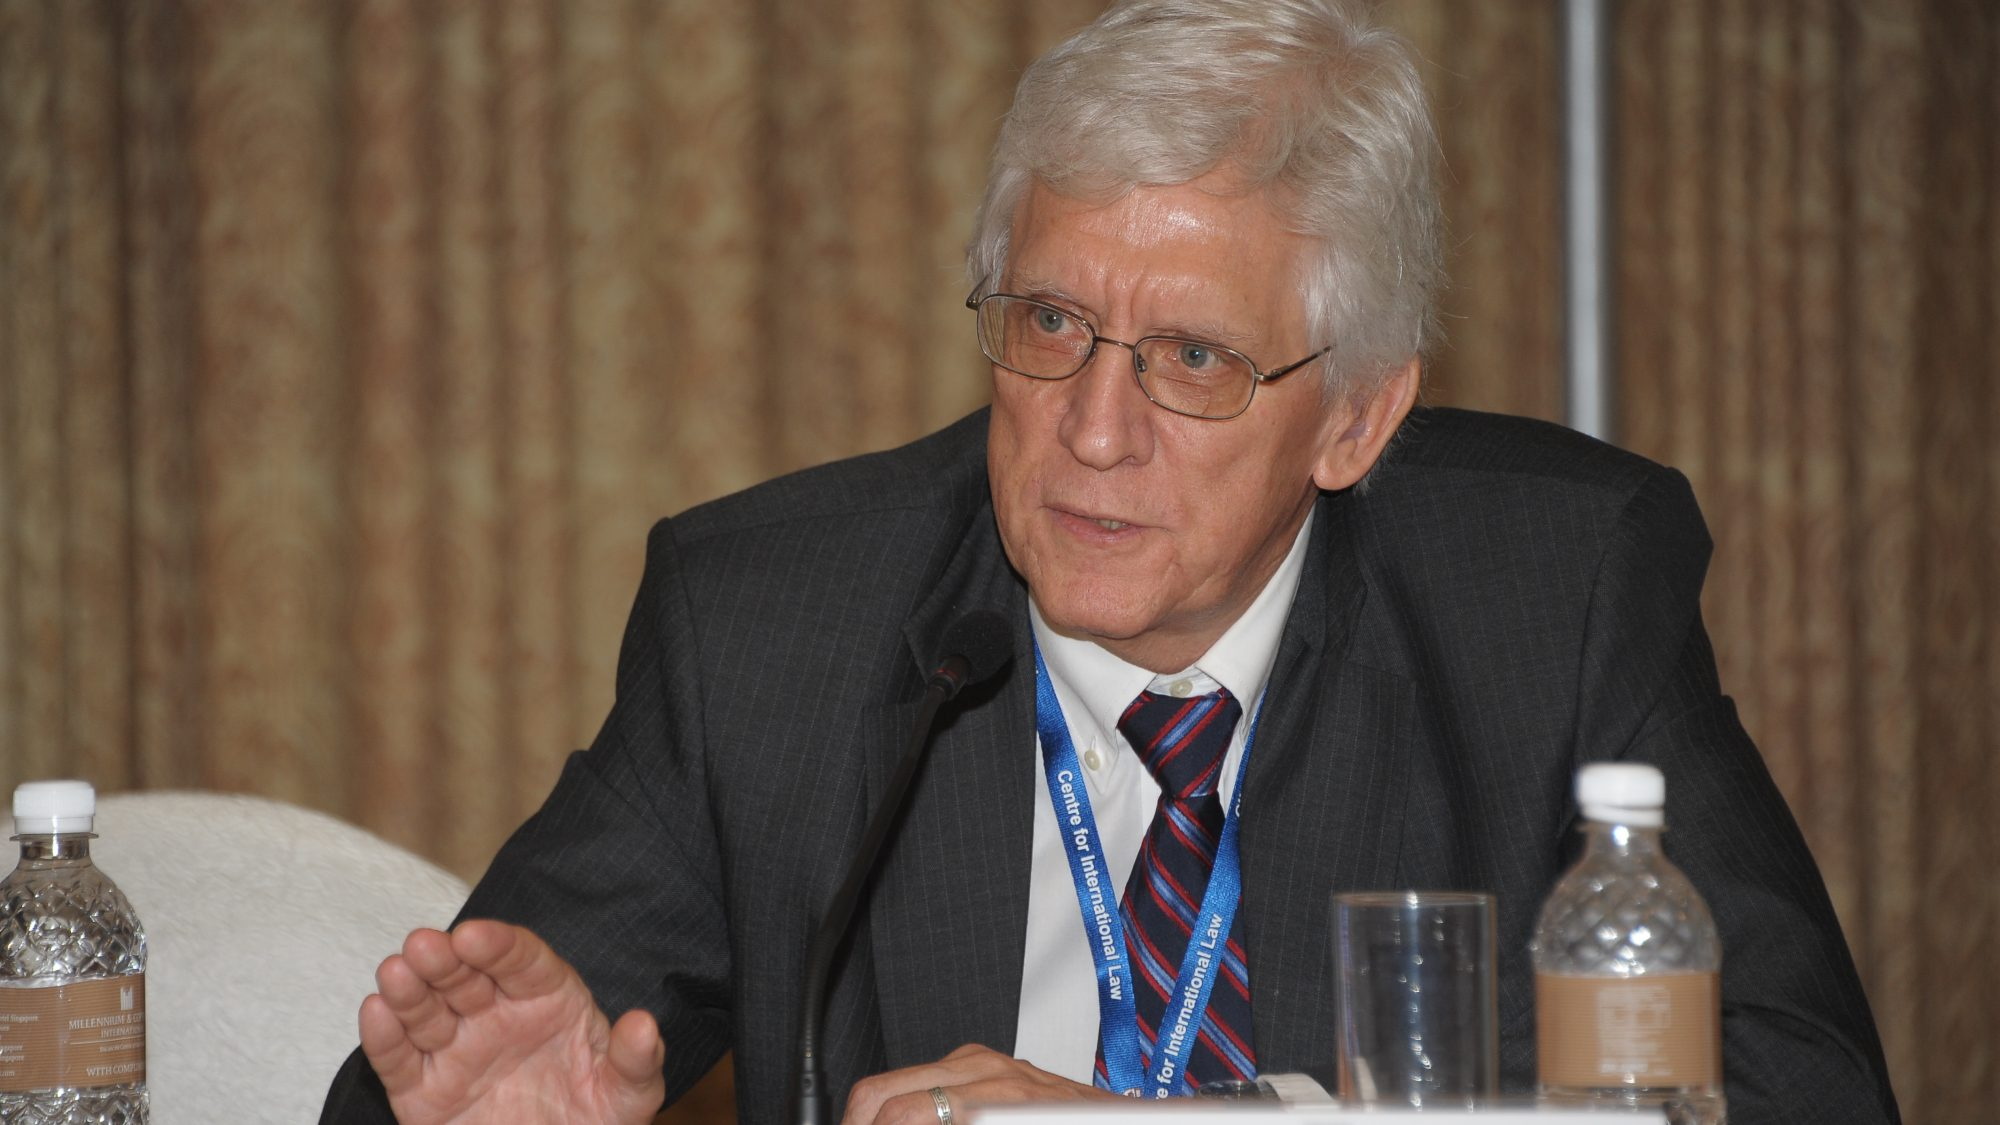 Robert Beckman participating in a conference